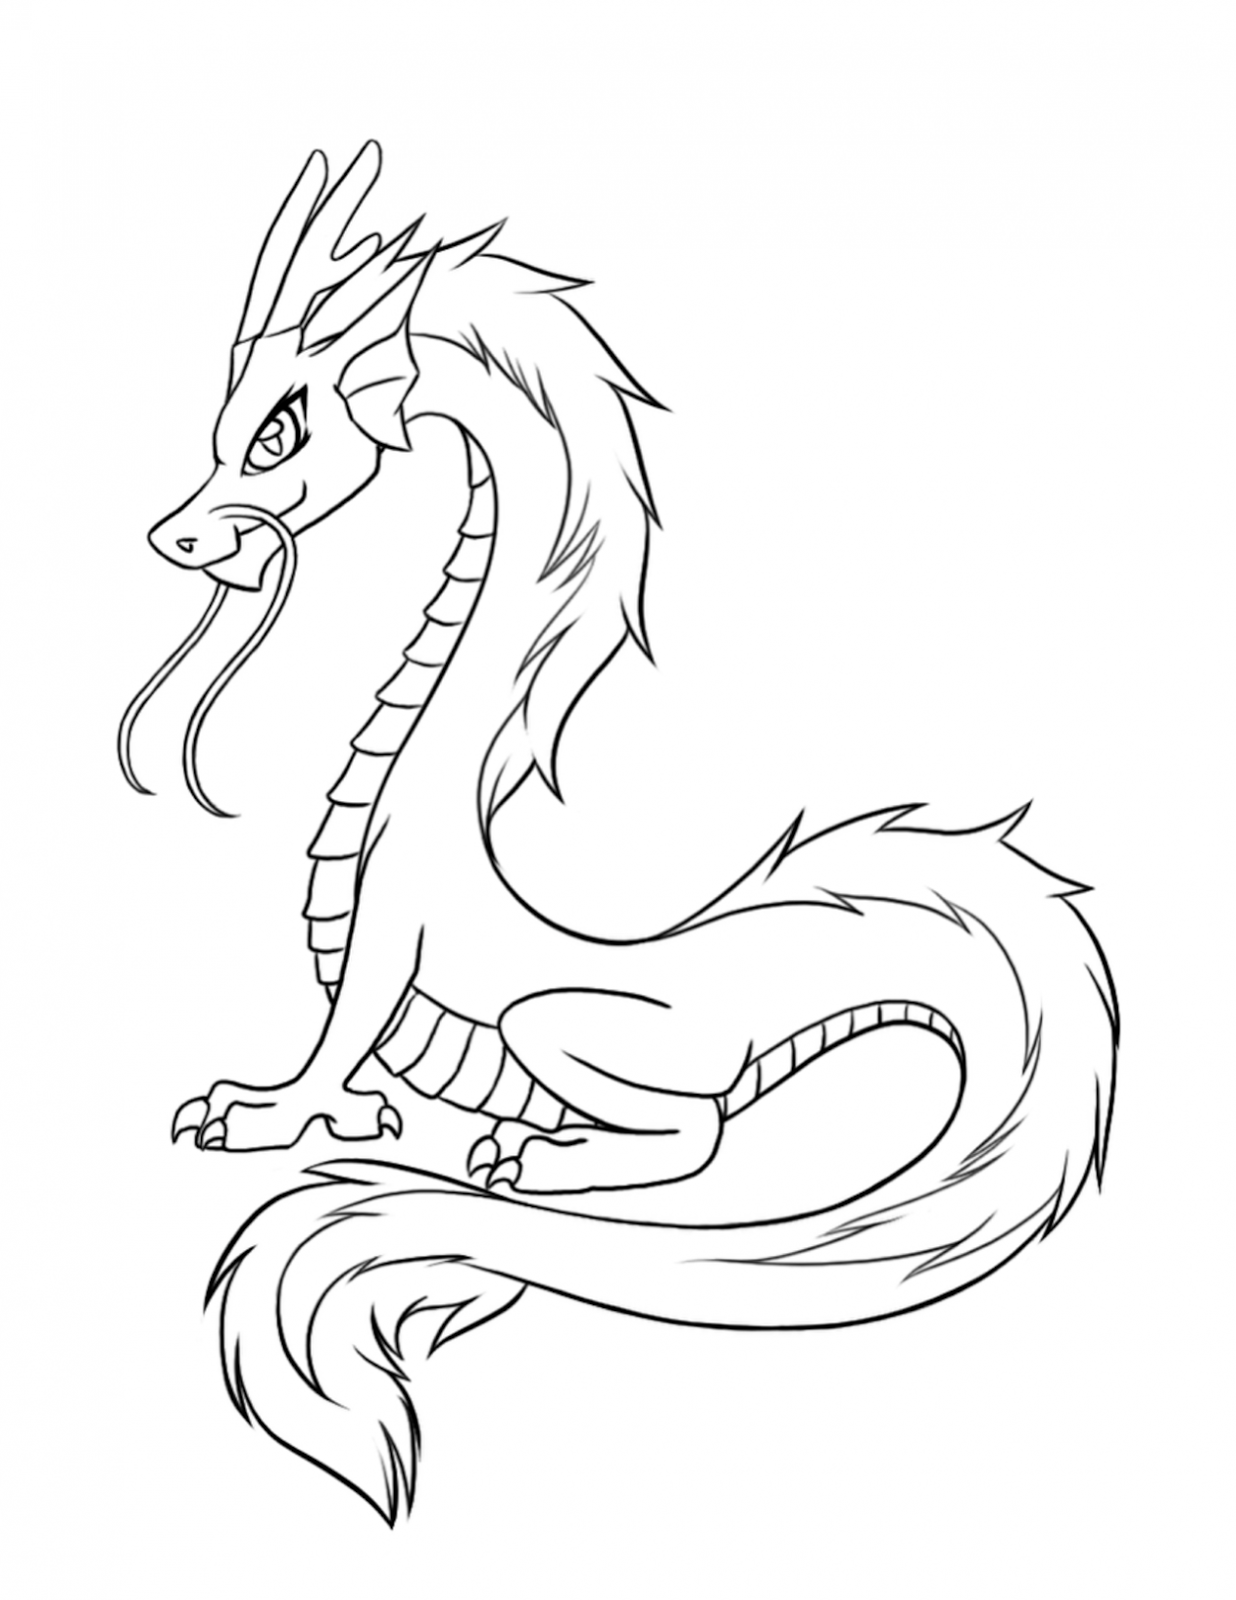 Dragon Coloring Pages - Kidsuki